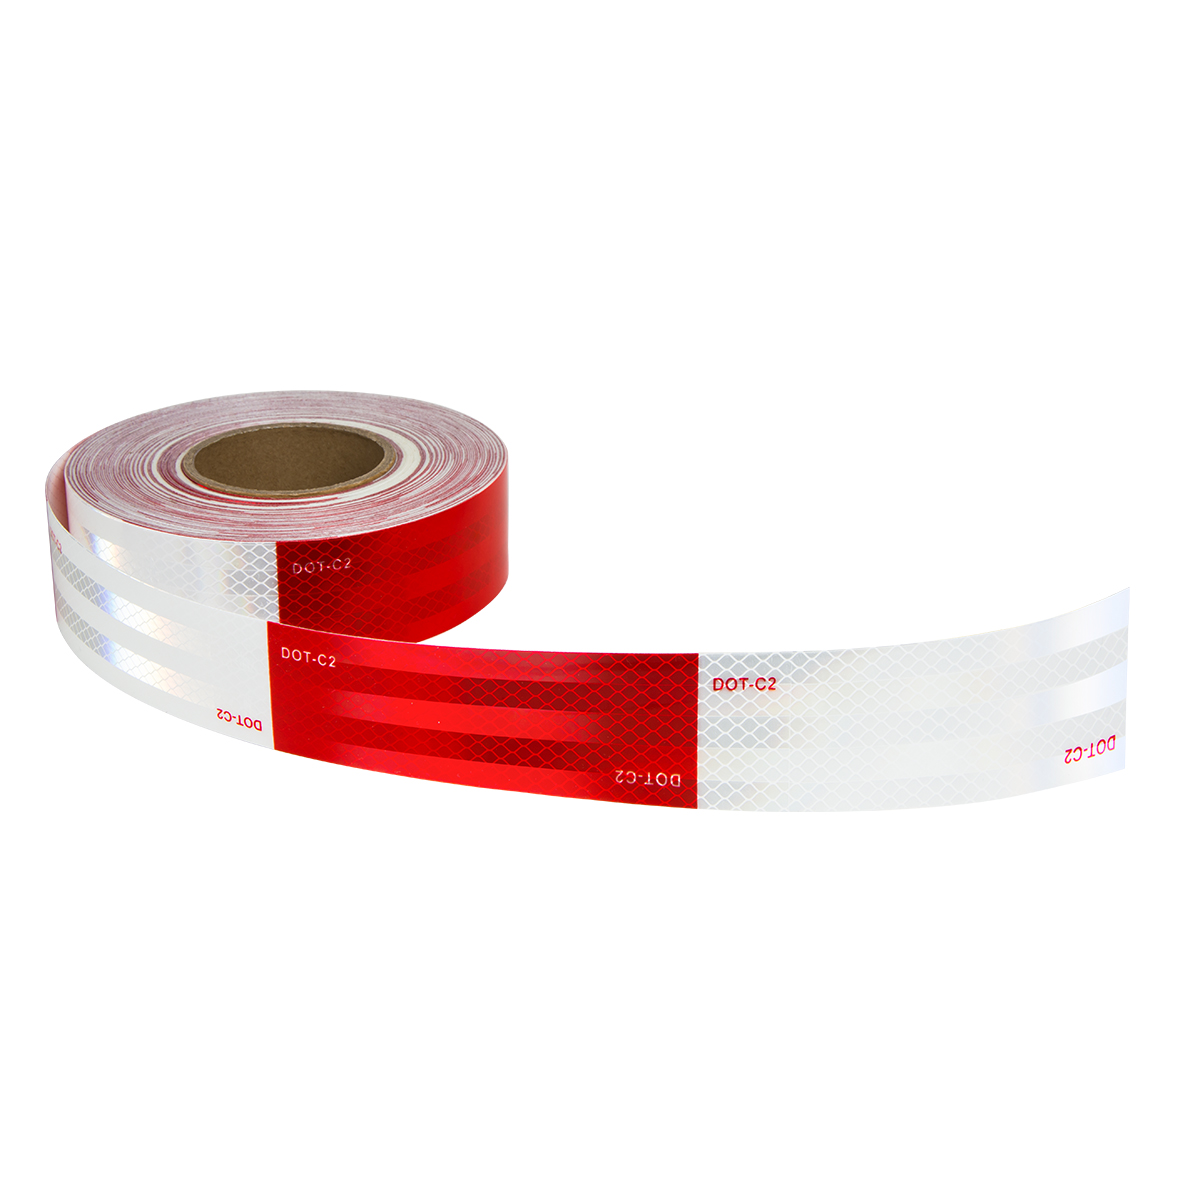 92296 Premium Hi Viz DOT-C2 Conspicuity Tape in Red & White 150' Roll